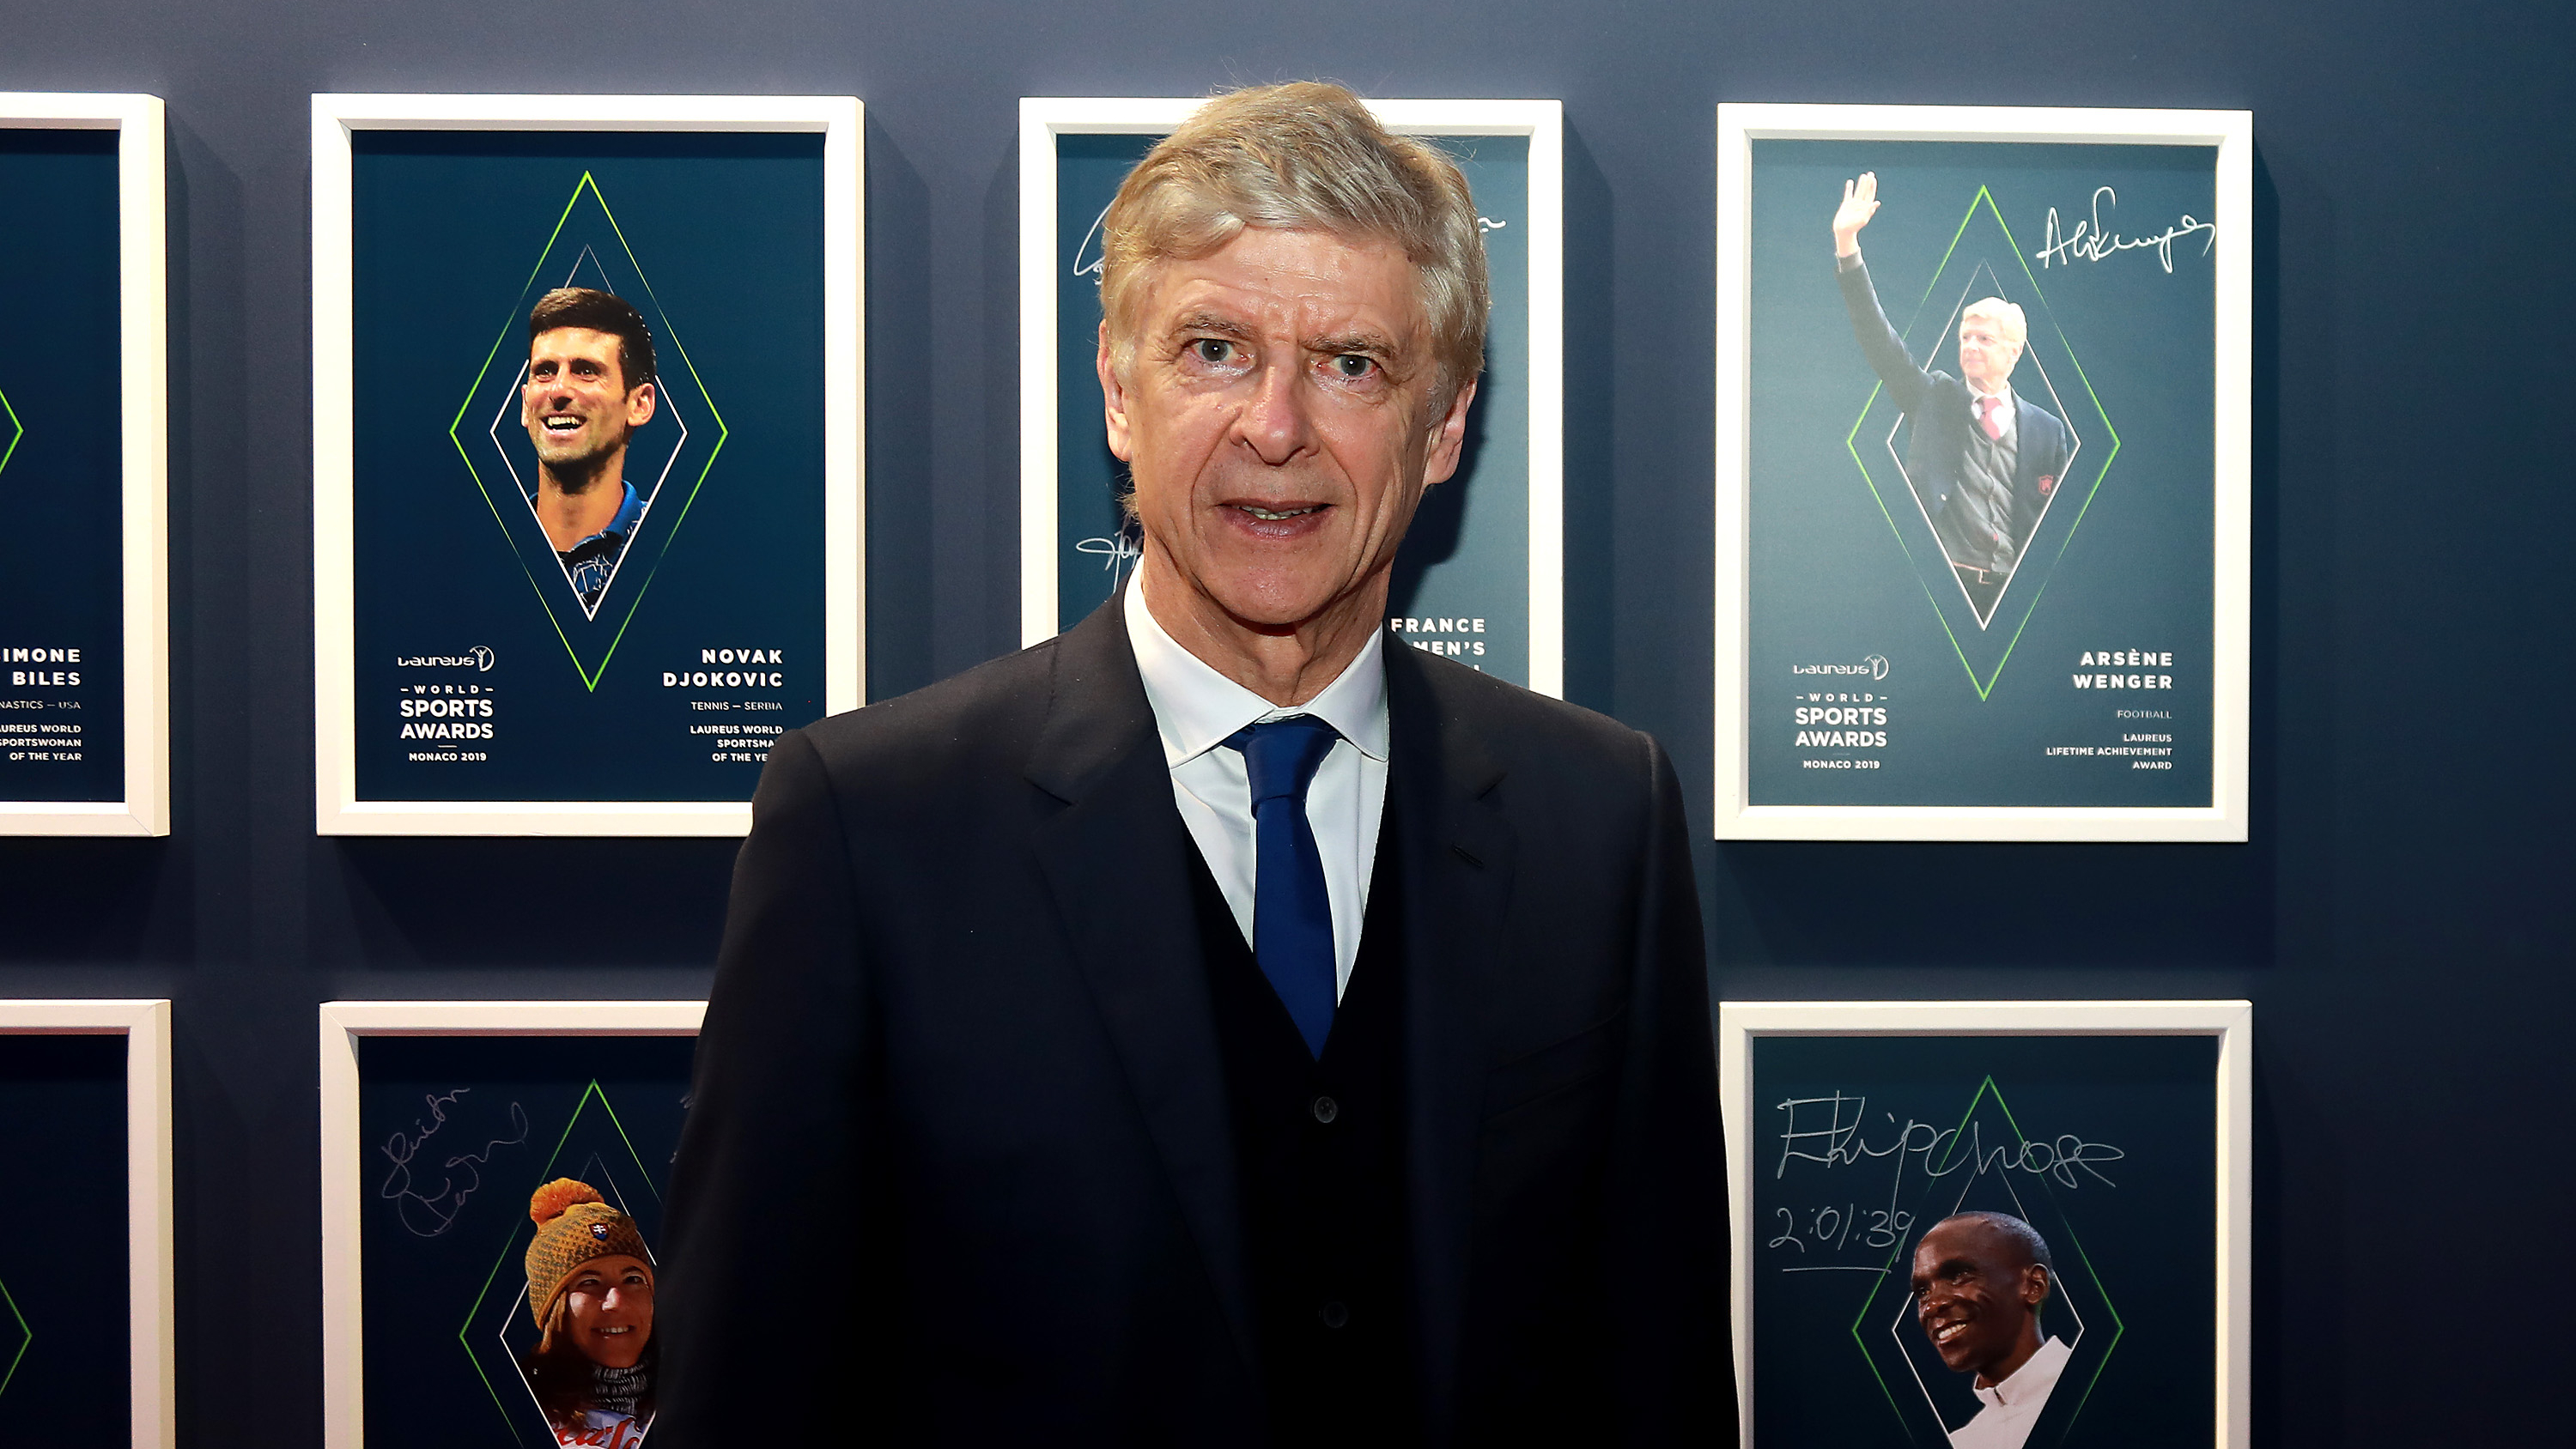 'The lower leagues are dying' – Wenger fears for clubs due to coronavirus